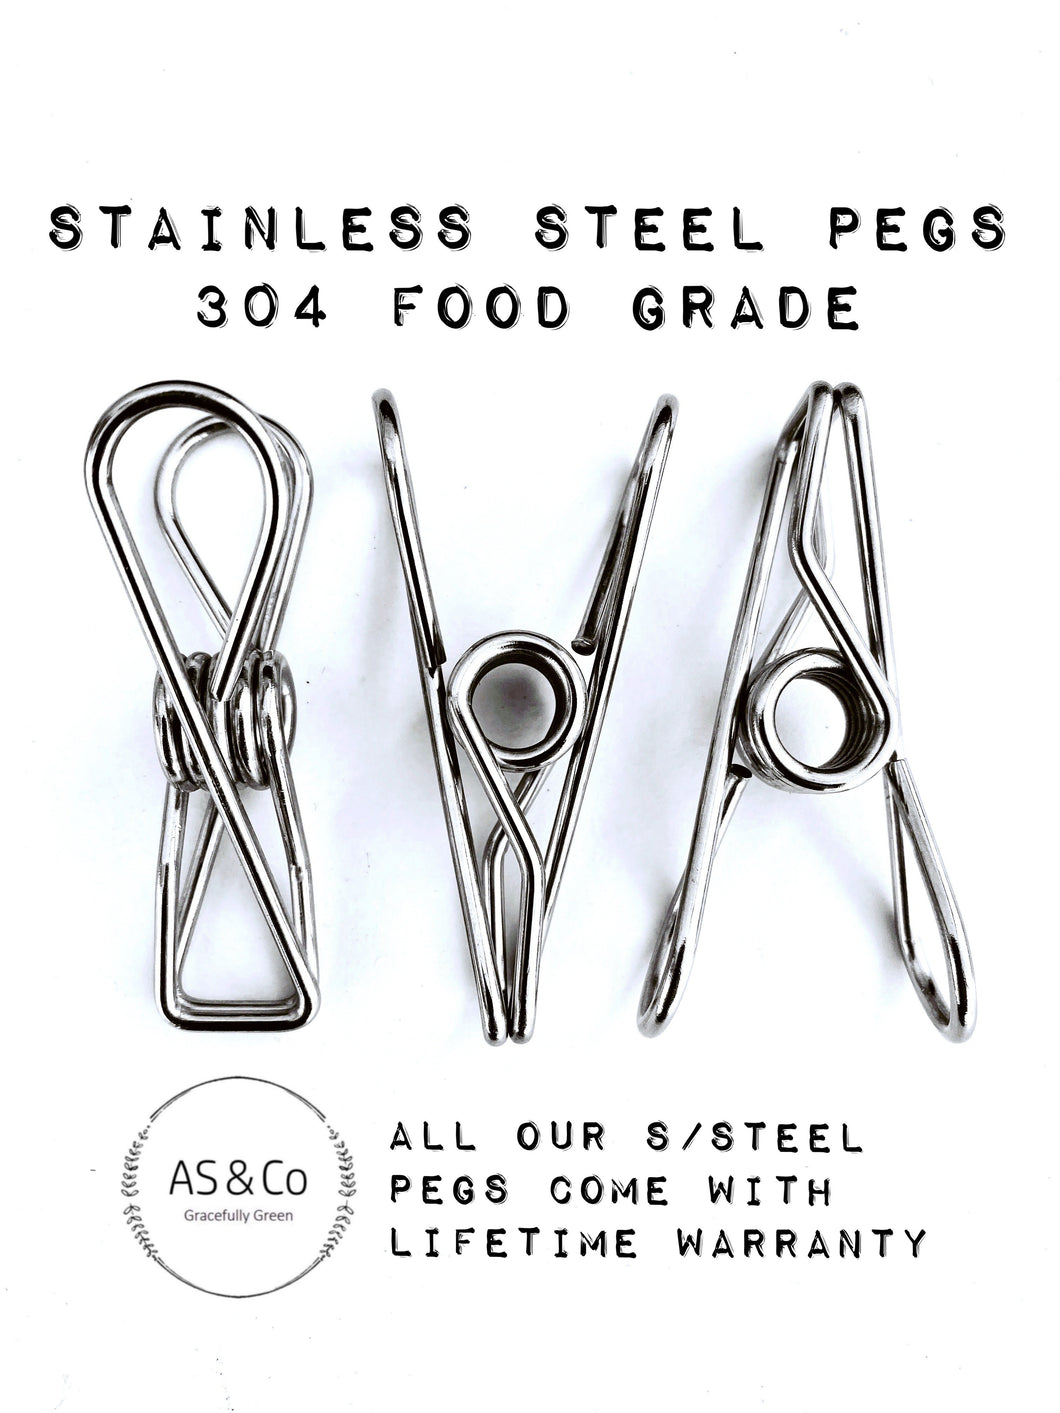 Stainless Steel Wire Clothes & Multipurpose Pegs 50 Pack - 304 S/S